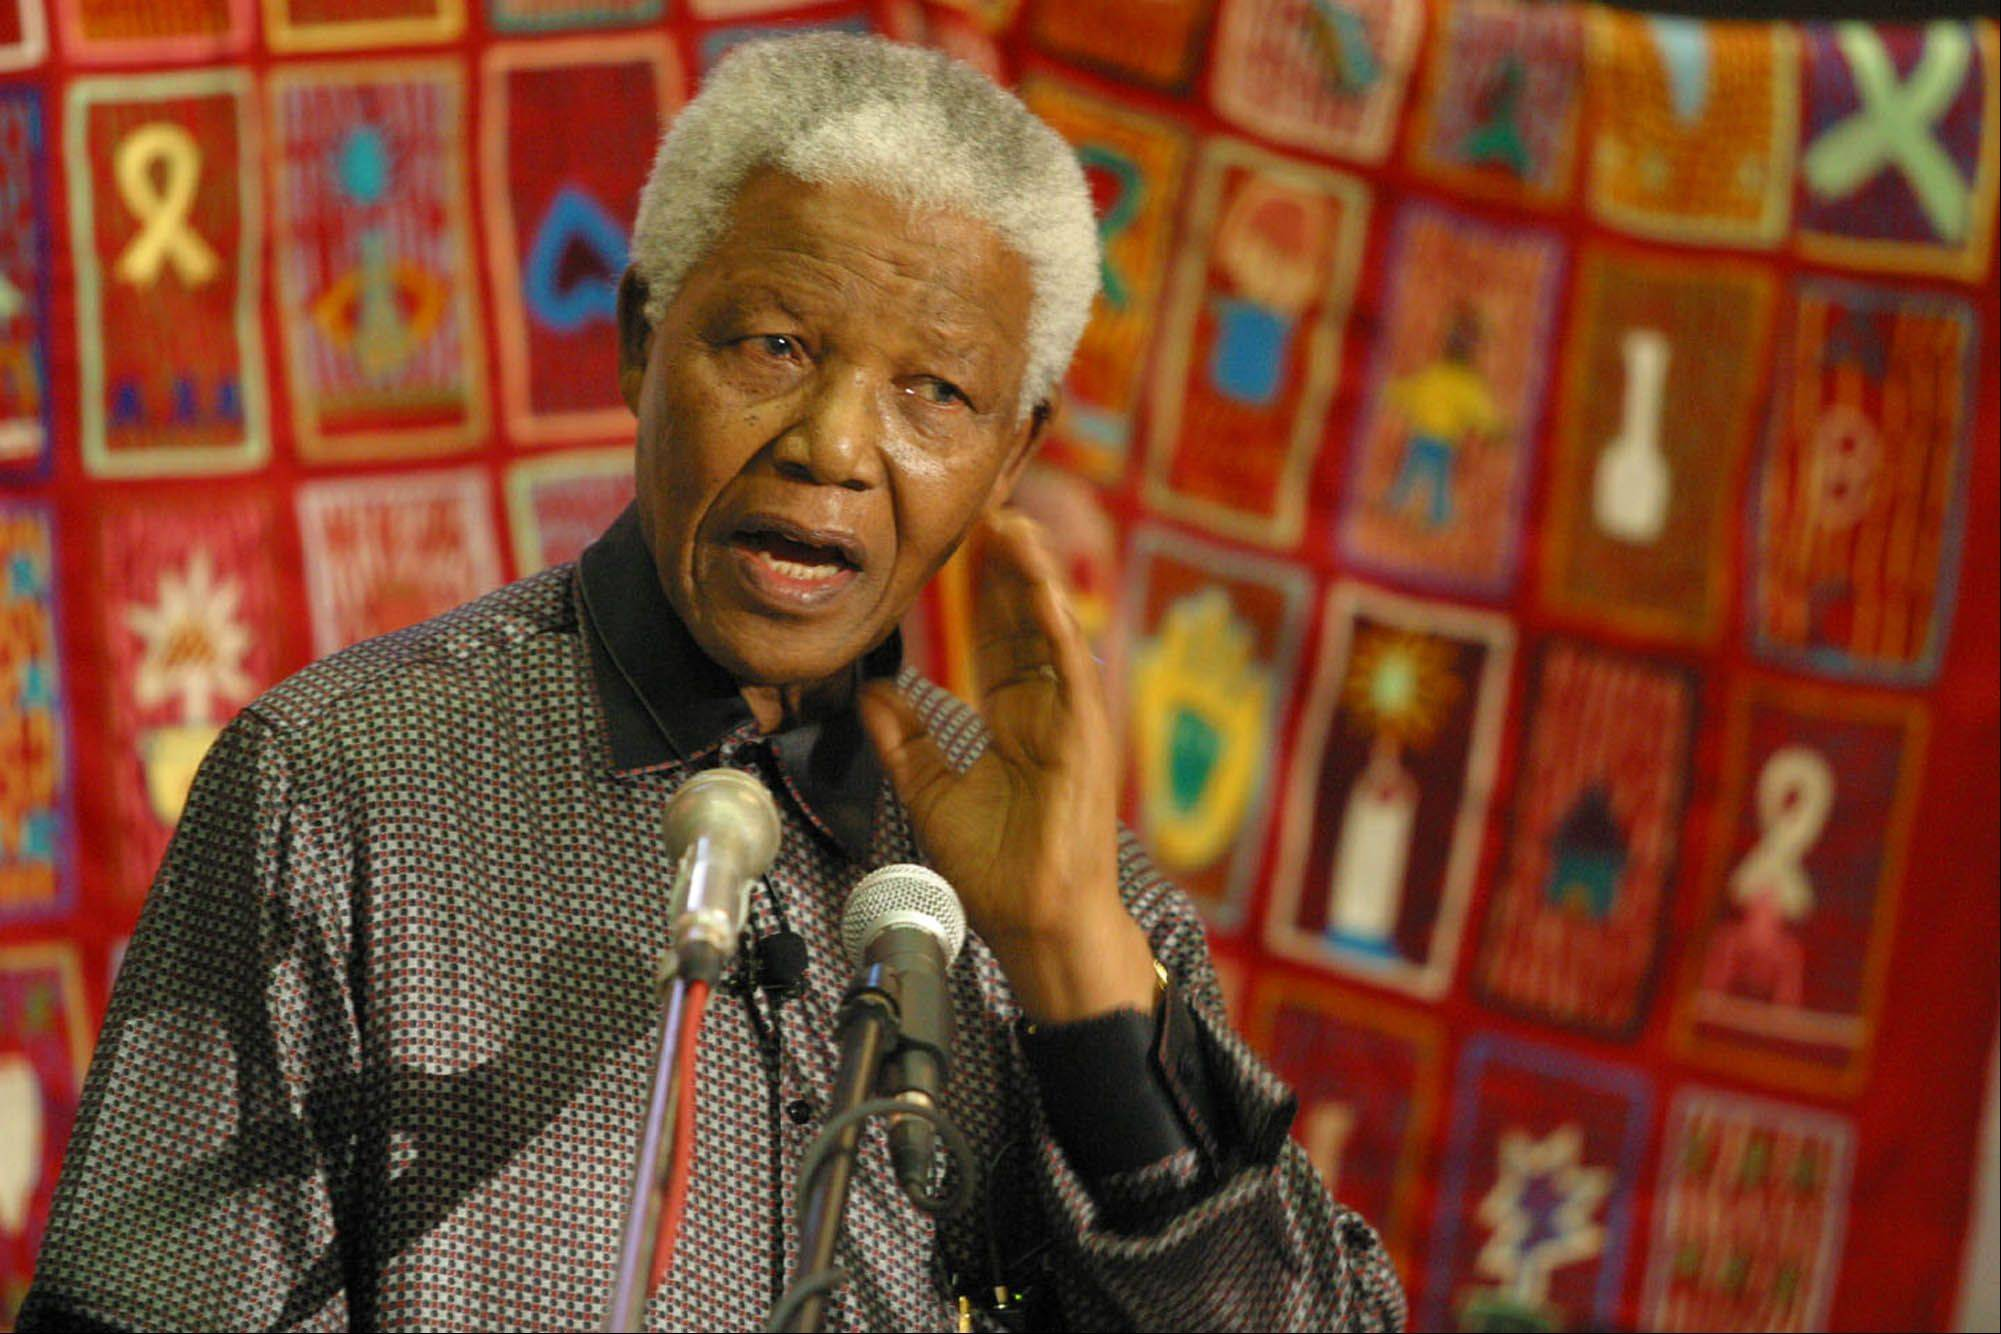 Former South African President Nelson Mandela stands before an AIDS quilt during a World AIDS Day function in Bloemfontein, South Africa, Sunday Dec. 1, 2002.